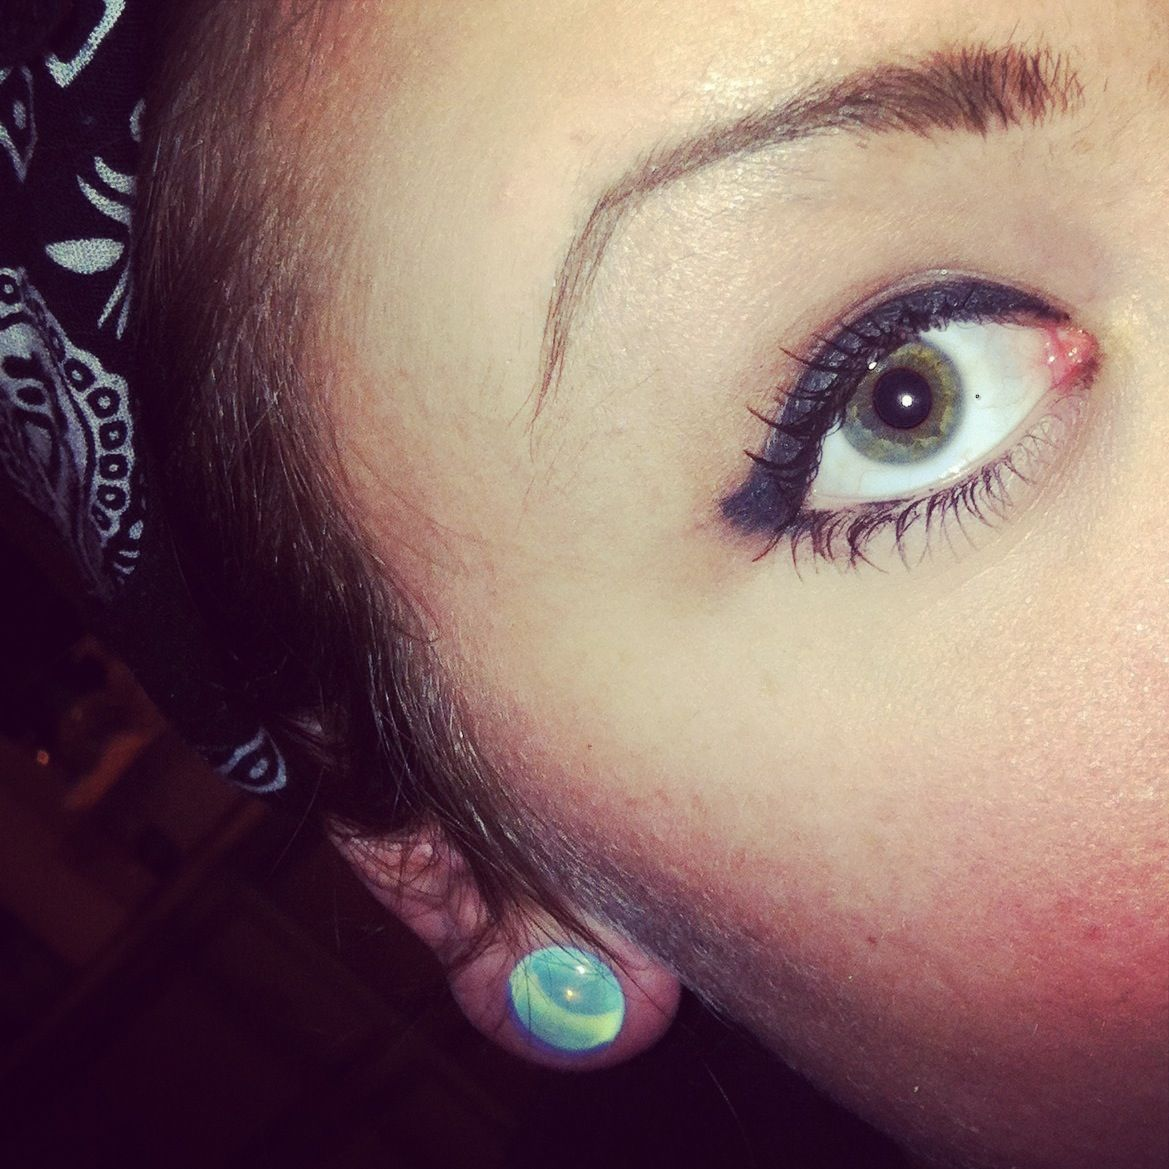 #dilated #pupils #gauges #stretchedears